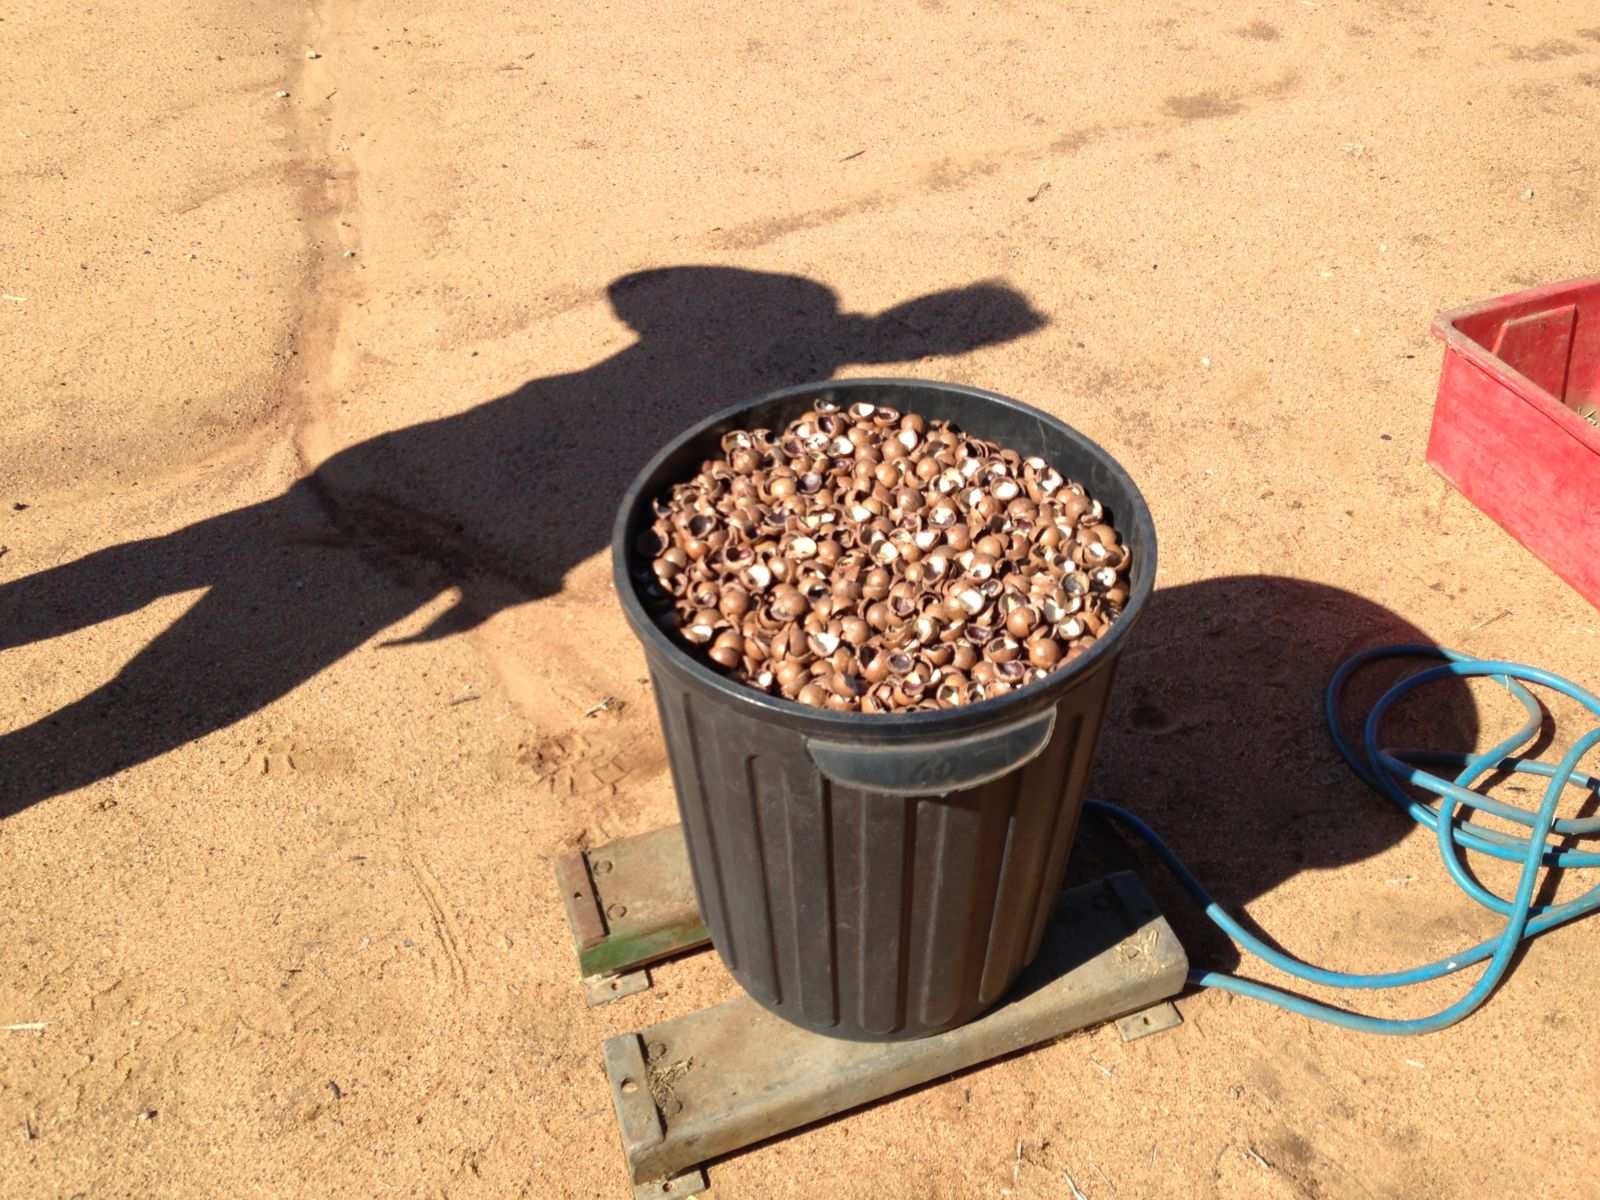 60 liter plastoc bucket full of macadamia nut shell on weigh scales.